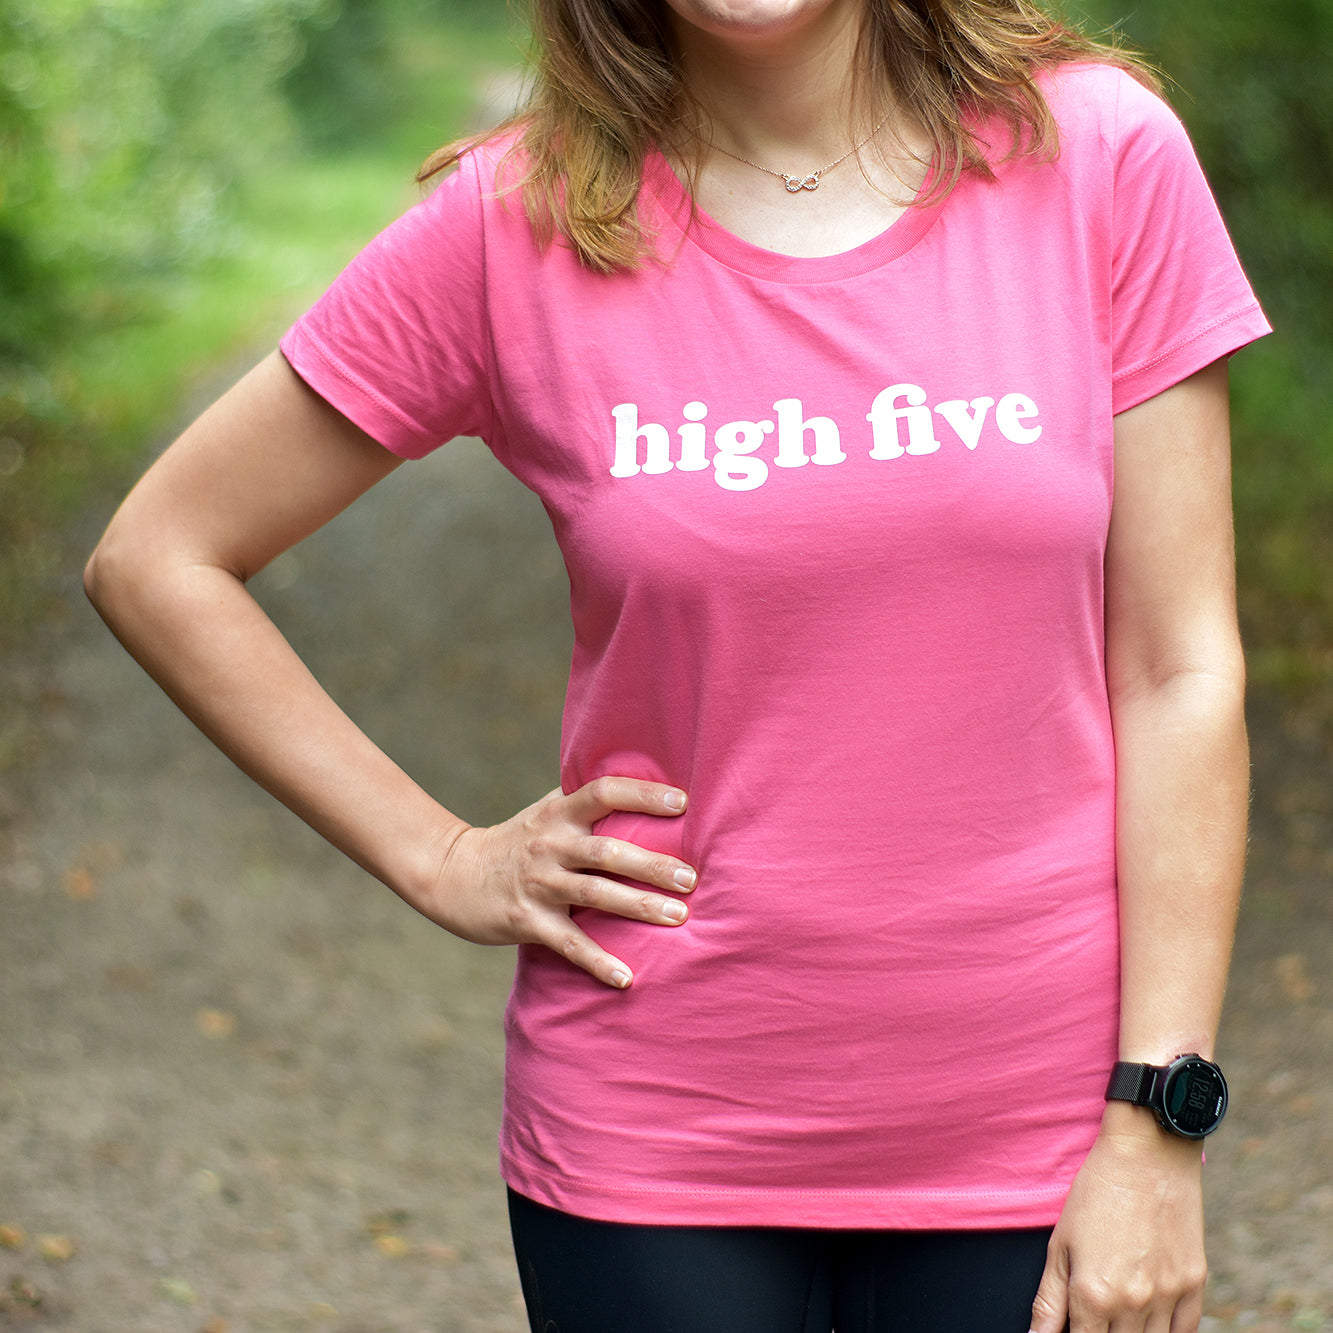 High Five Tshirt